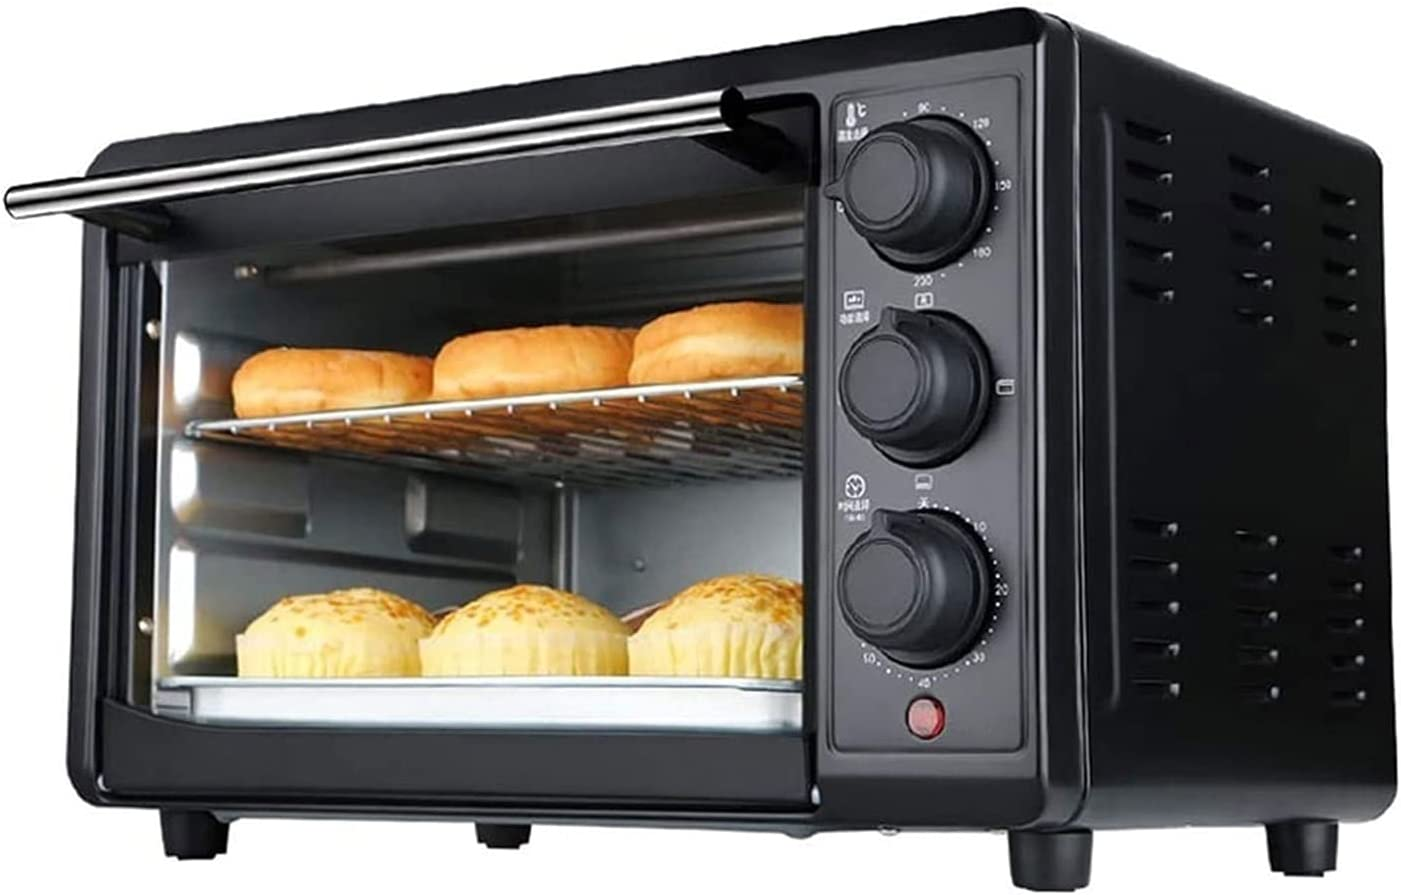 SFLRW Extra Wide Convection Countertop Toaster Oven, Includes Bake Pan, Broil Rack & Toasting Rack, Stainless Steel/Black